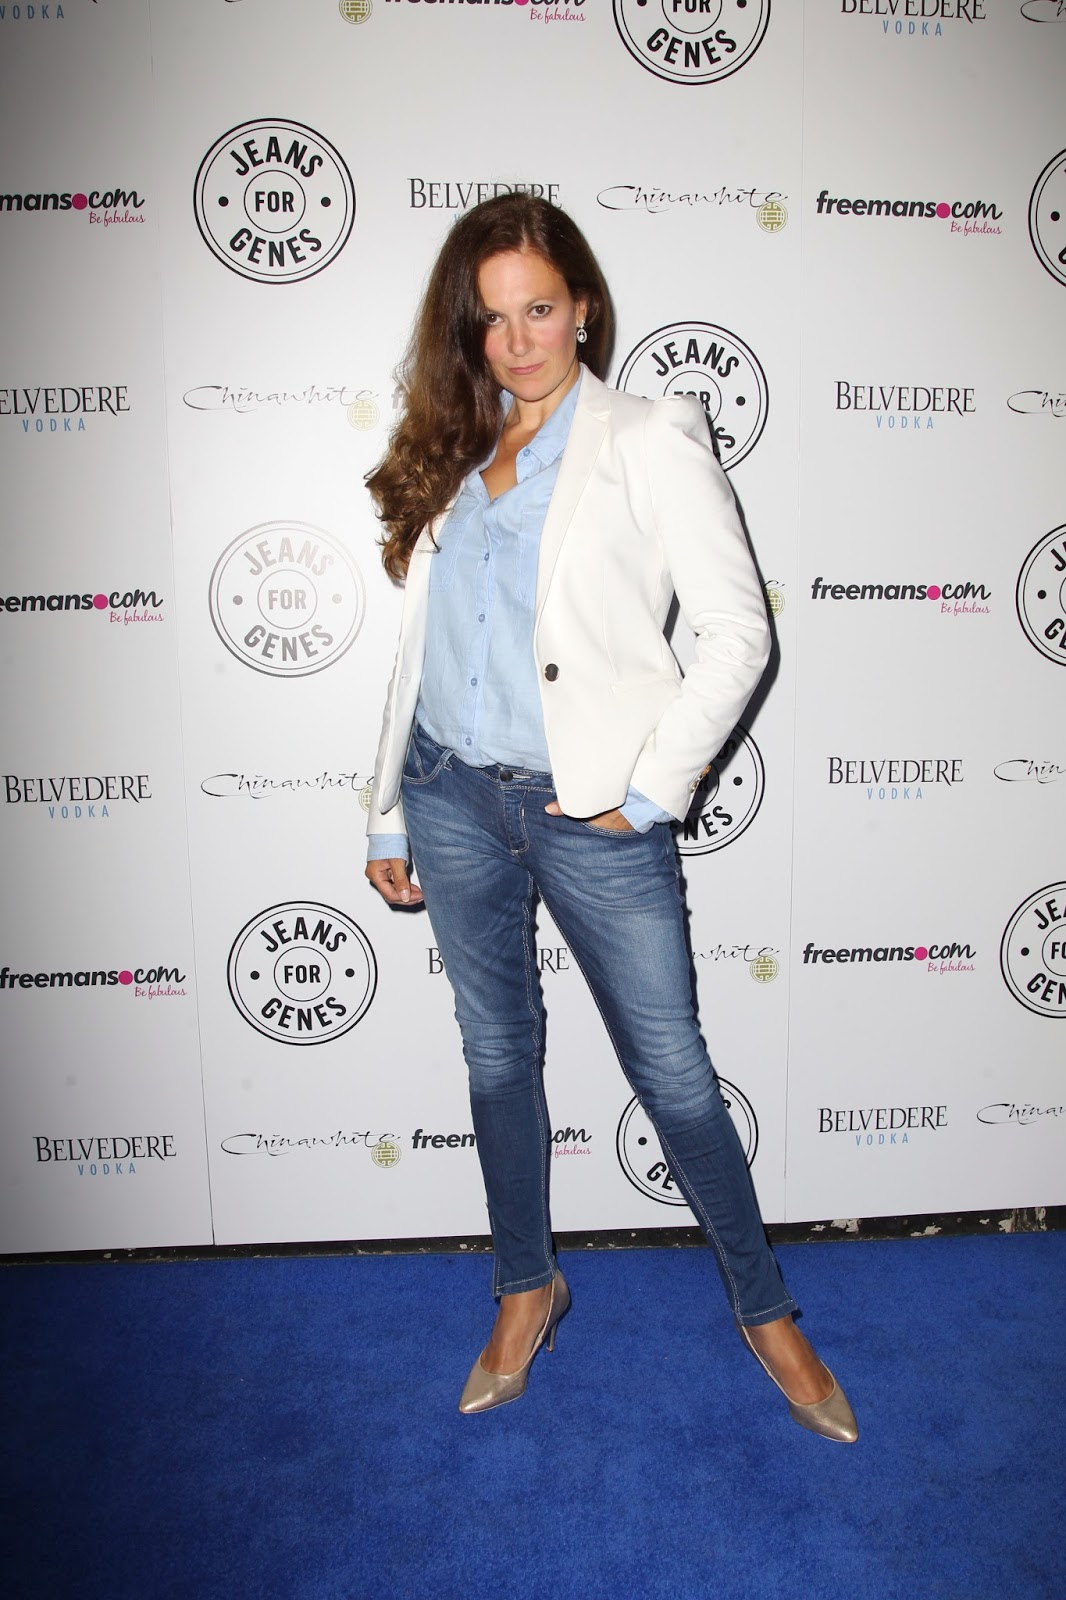 What to wear to Jeans for Genes launch party